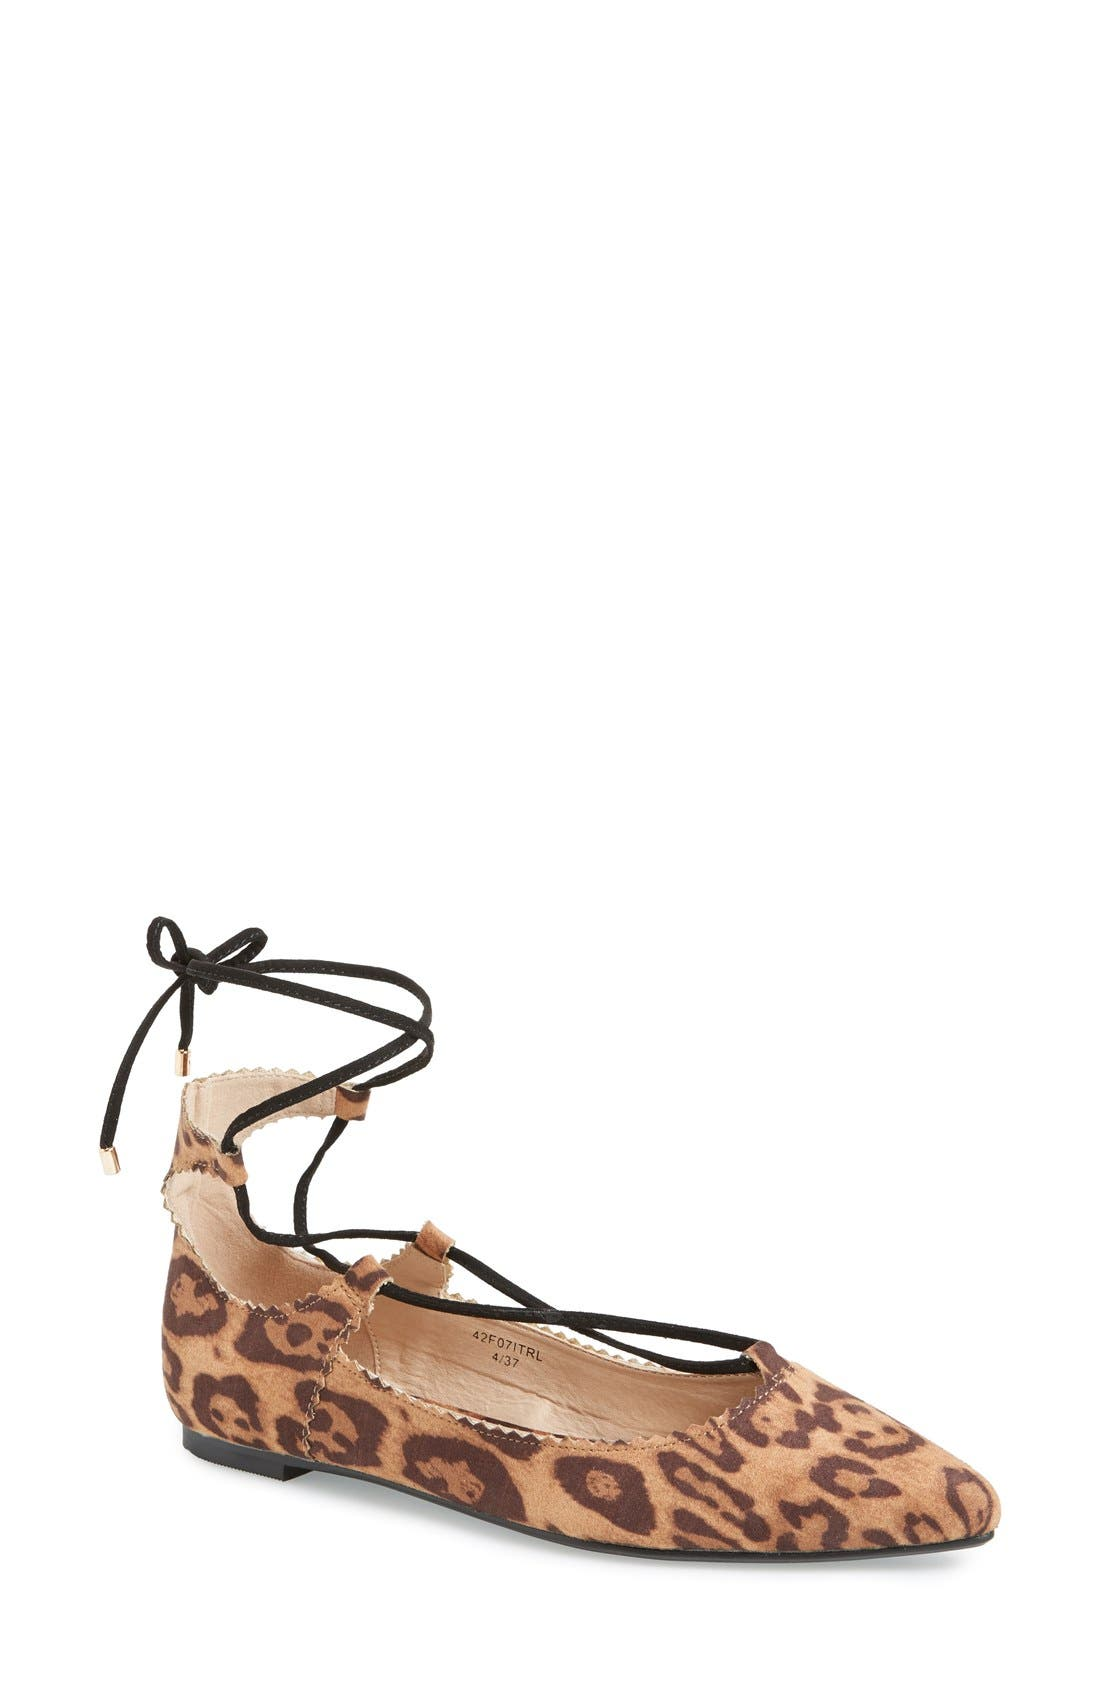 Main Image - Topshop 'Finest' Pointy Toe Ghillie Flat (Women)